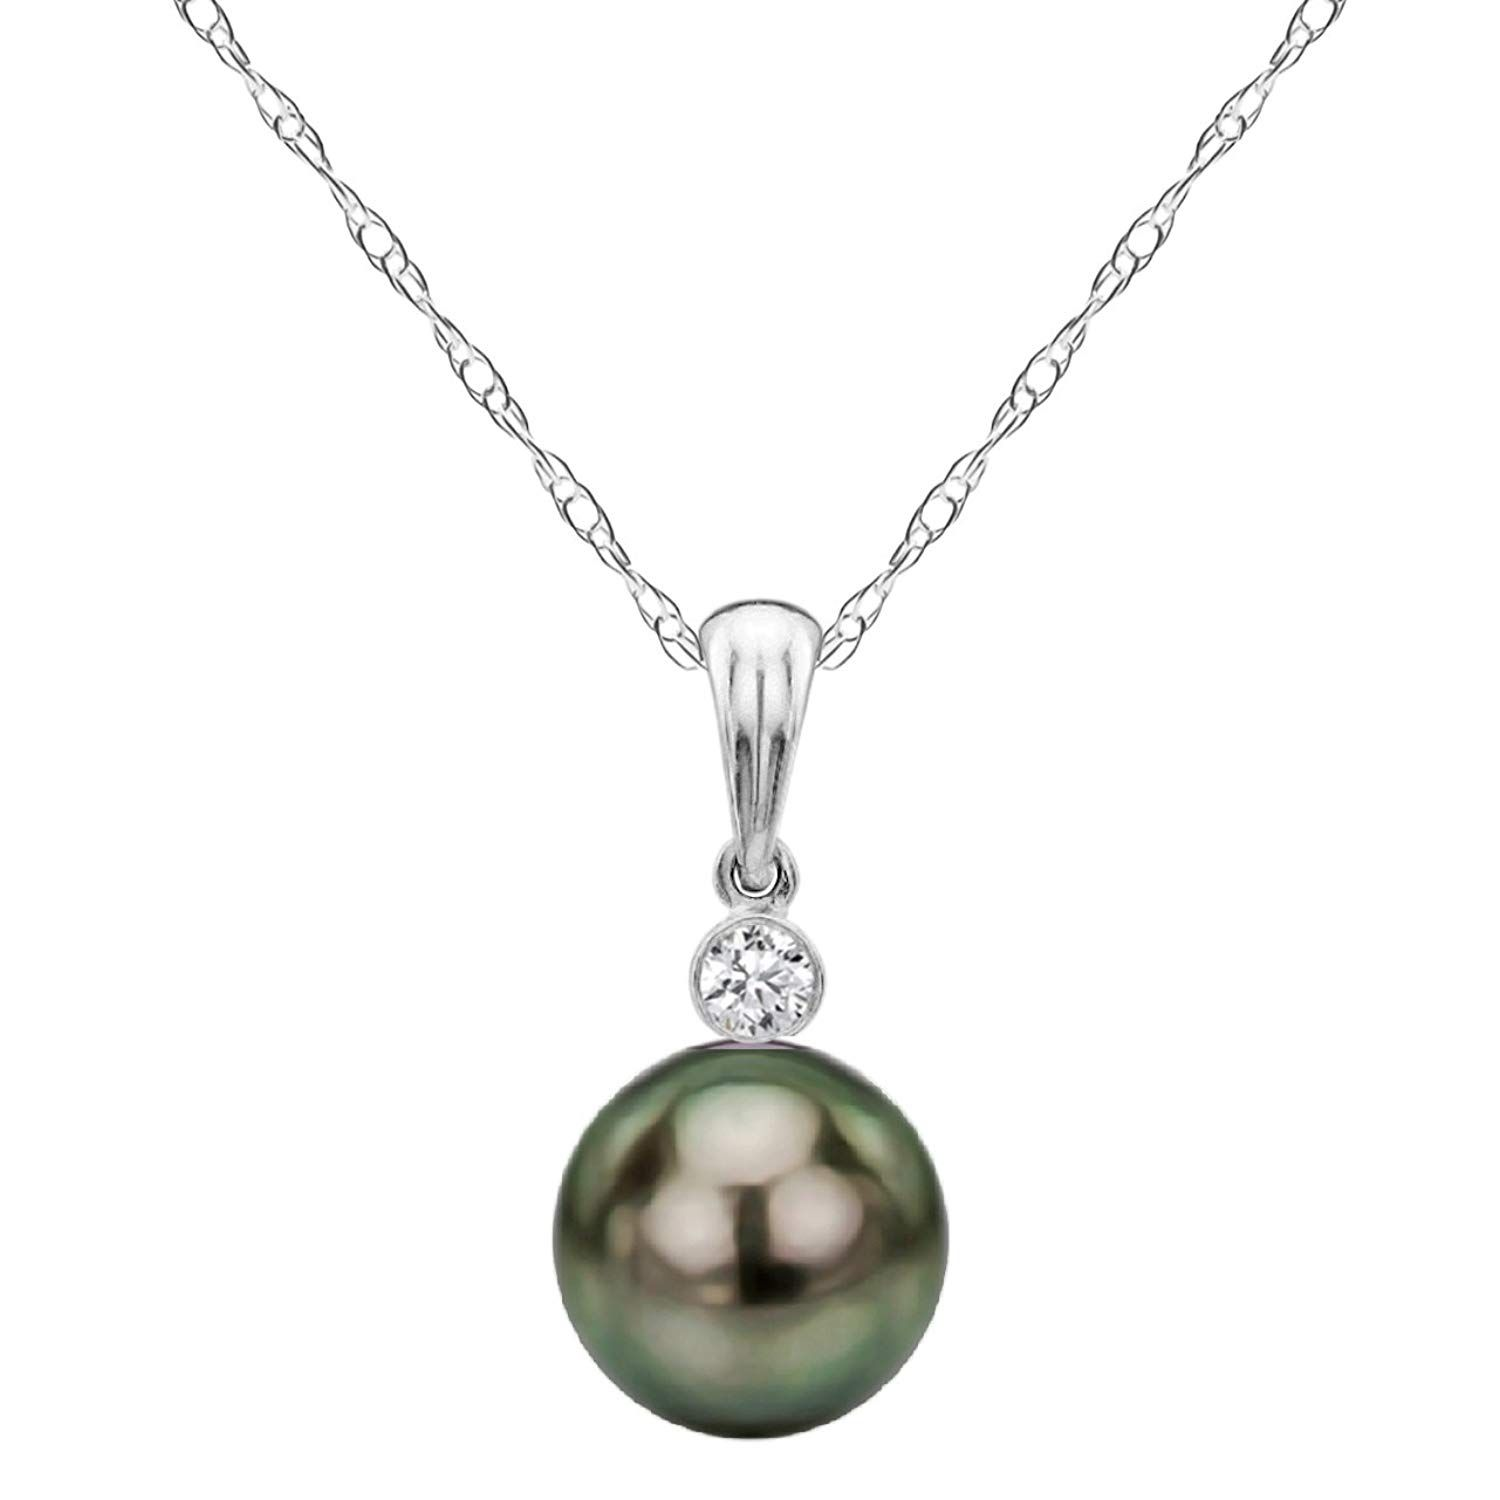 Japanese AAAA 6-11.5mm Pink Freshwater Cultured Pearl Pendant Necklace 16//18 Solitaire Necklace Pendant